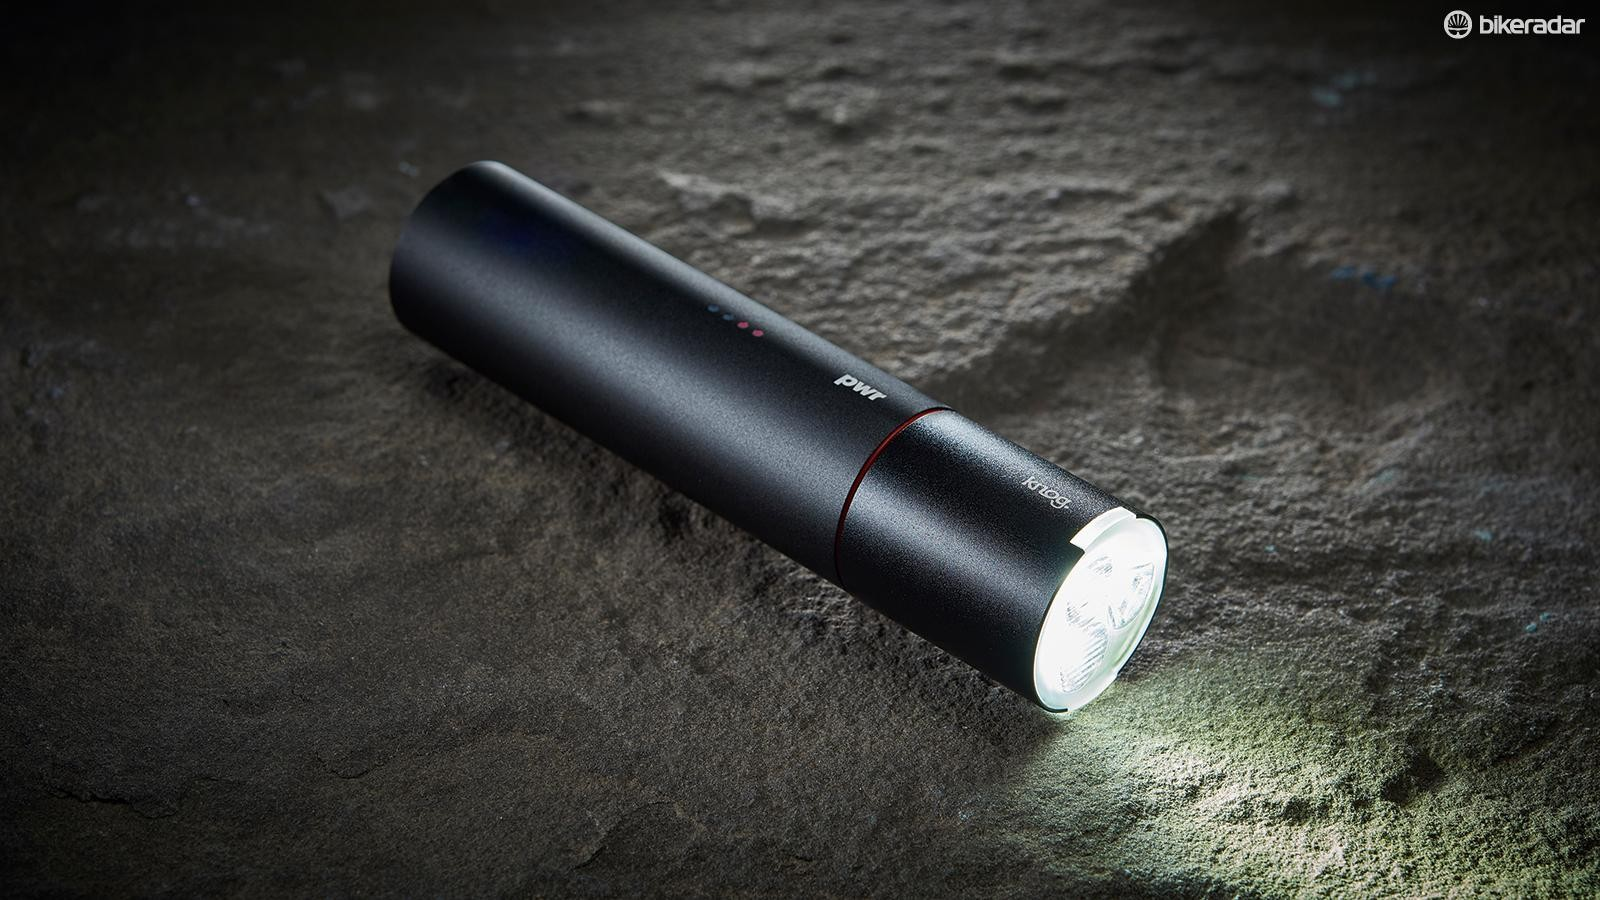 Knog's PWR lights are changeable